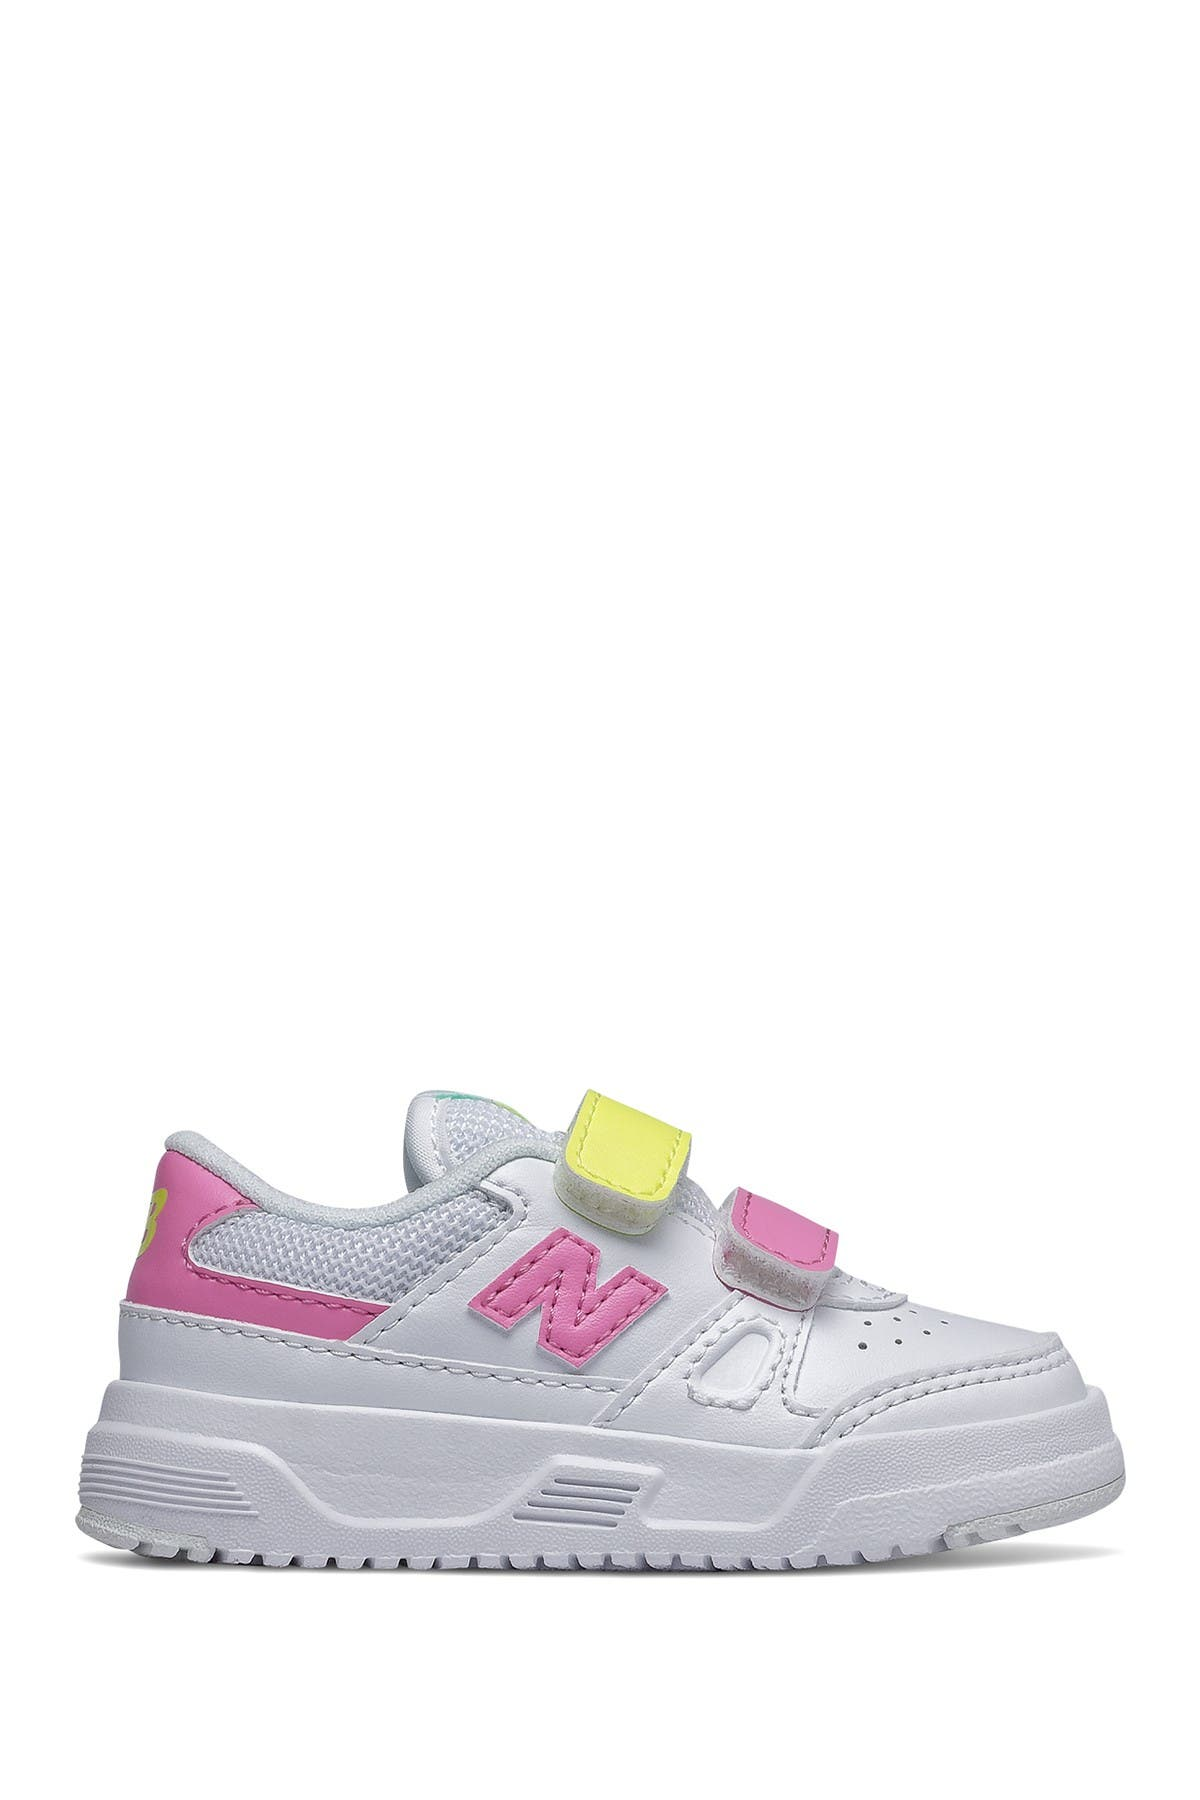 Image of New Balance CT20 Court Sneaker